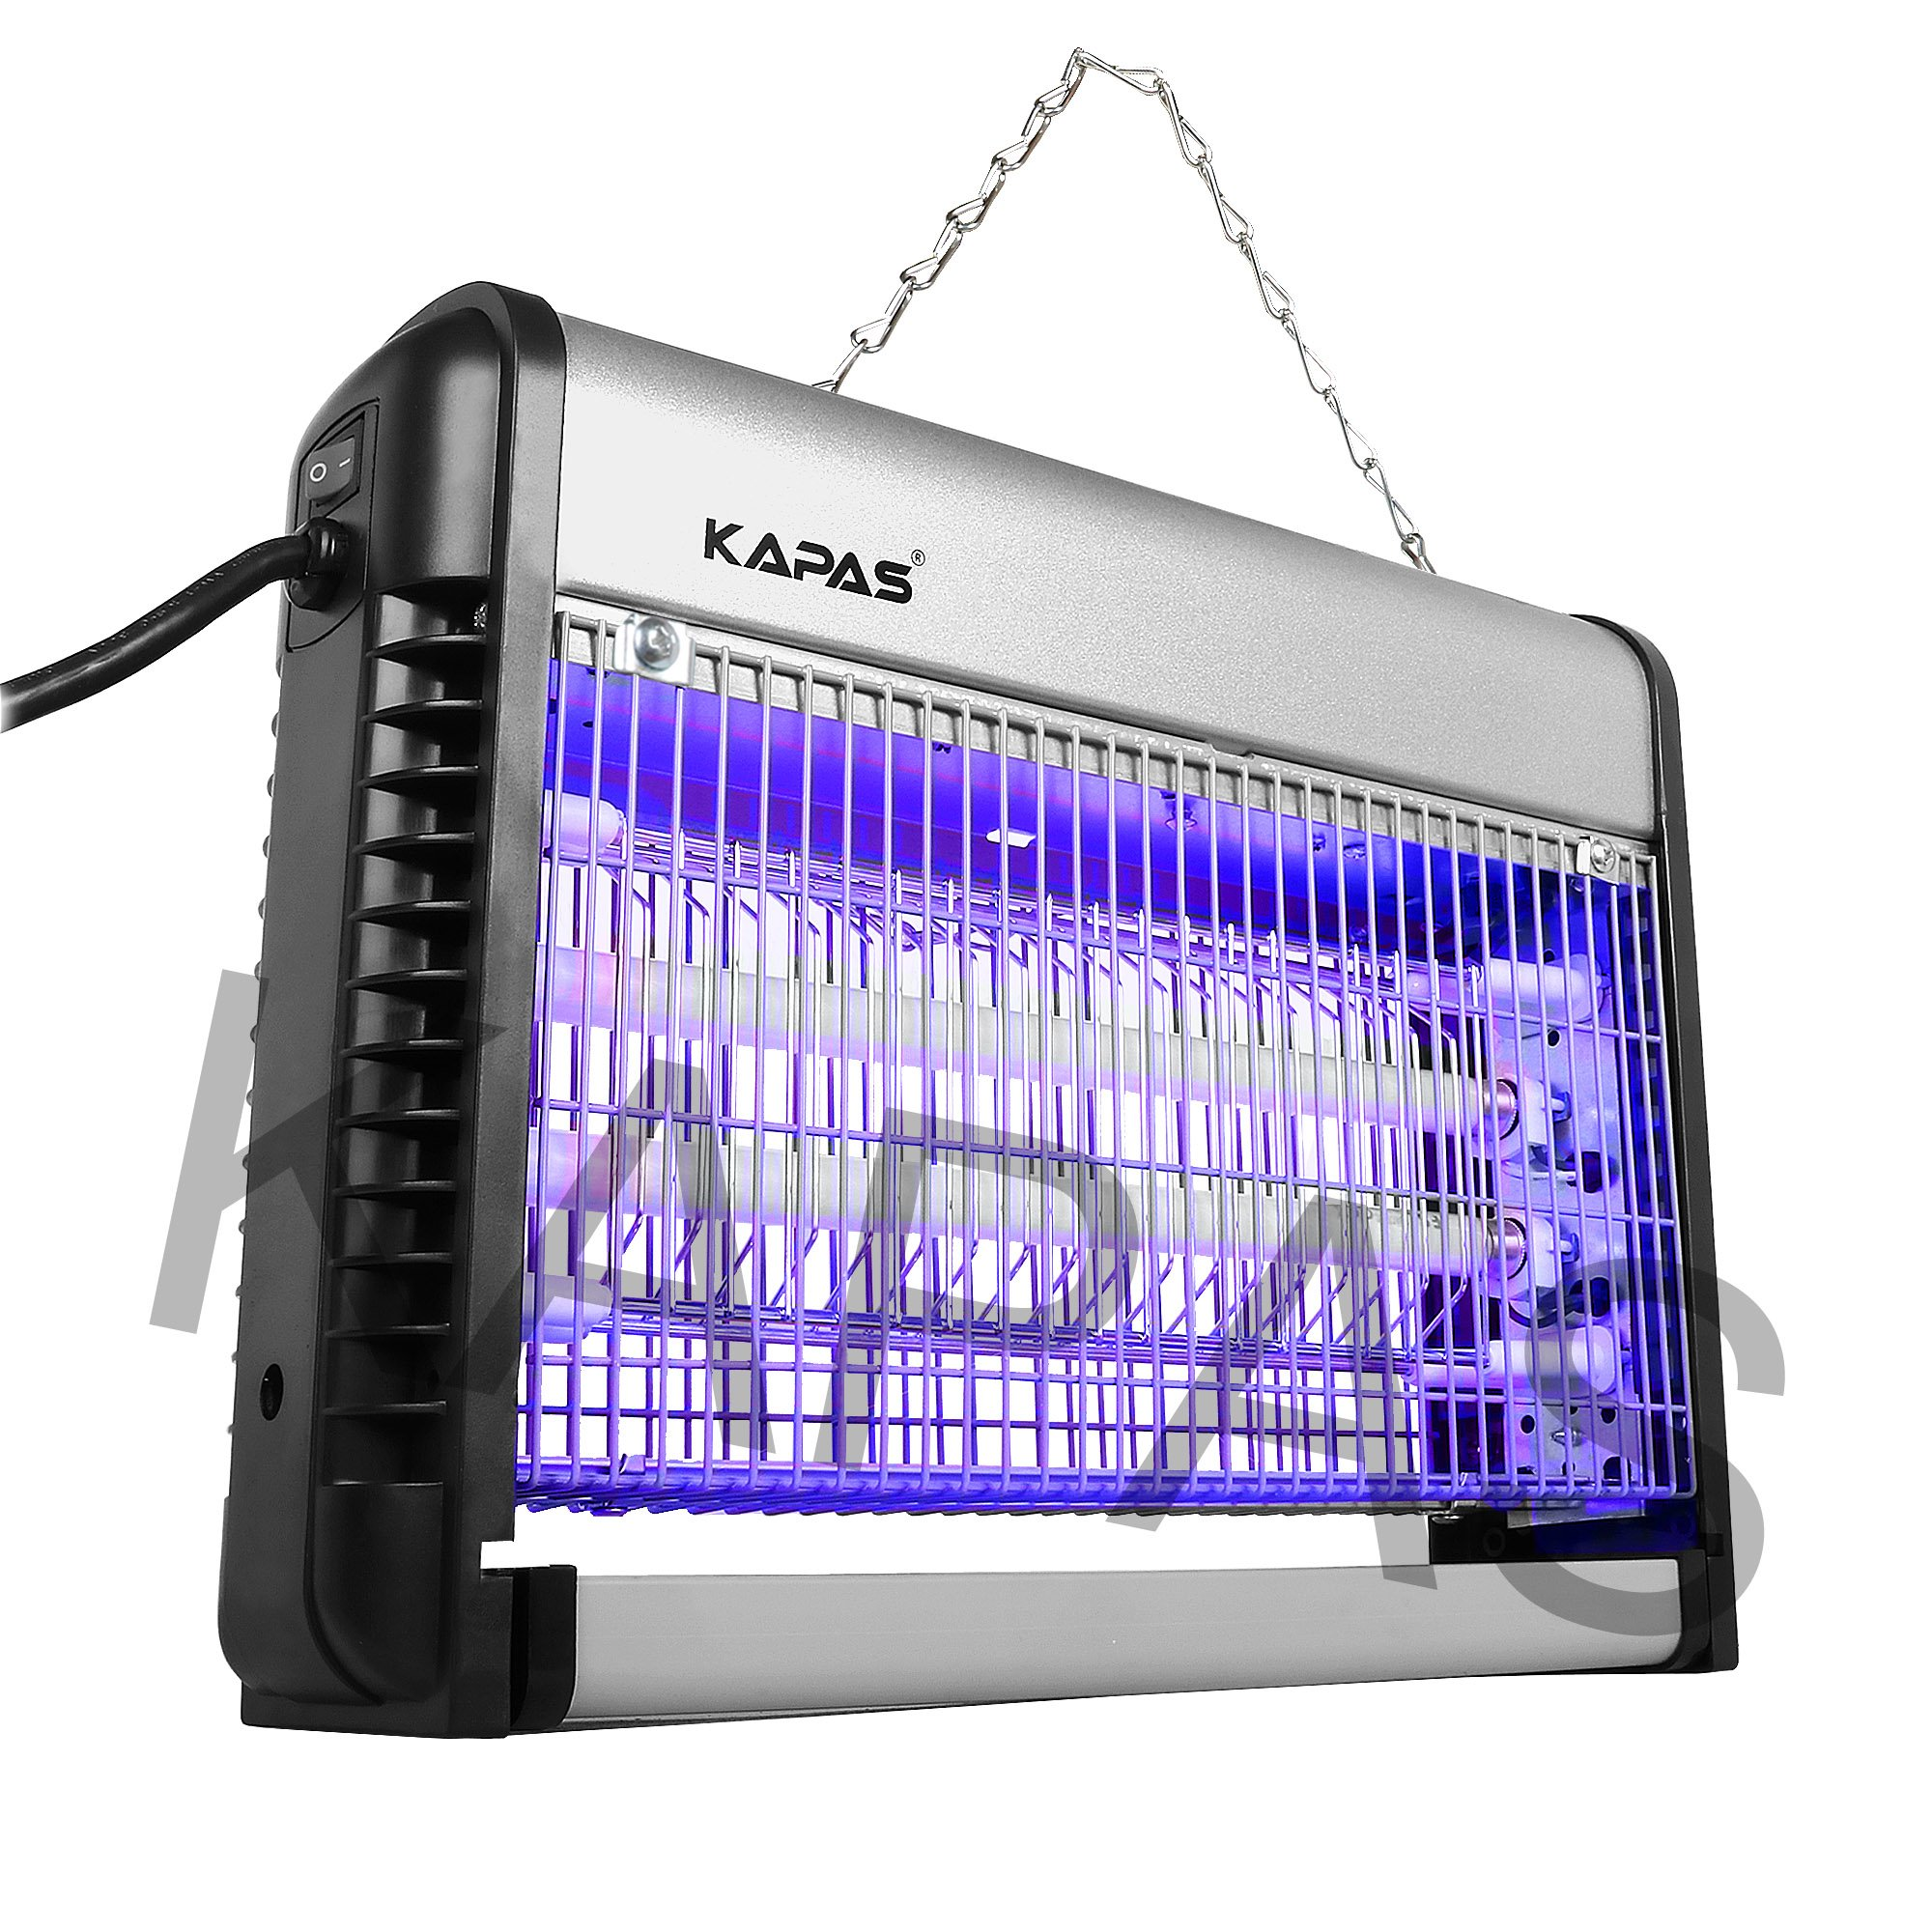 Kapas Mosquito Killer, Electric Mosquito Zapper Indoor Night Lamp, Mosquito Control, Mosquito Trap, Bug Zapper, Insect Zapper, Ideal for Indoor Home&Commercial Use 20W Bulbs (1, 13 x 11 x 4 inch) by Kapas